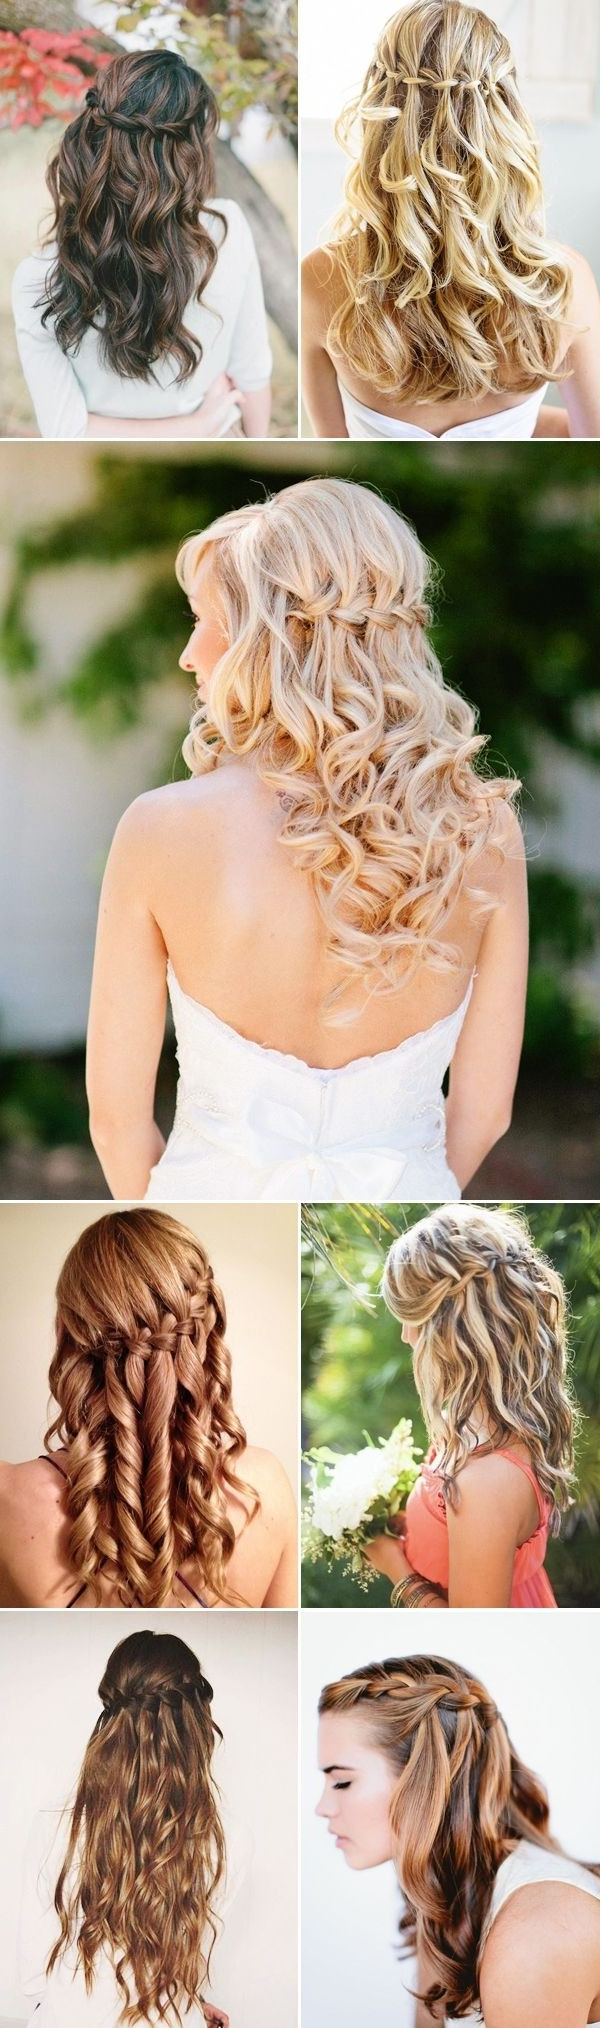 30 Hottest Bridesmaid Hairstyles For Long Hair – Popular Haircuts Regarding Most Recent Wedding Semi Updo Bridal Hairstyles With Braid (View 3 of 20)